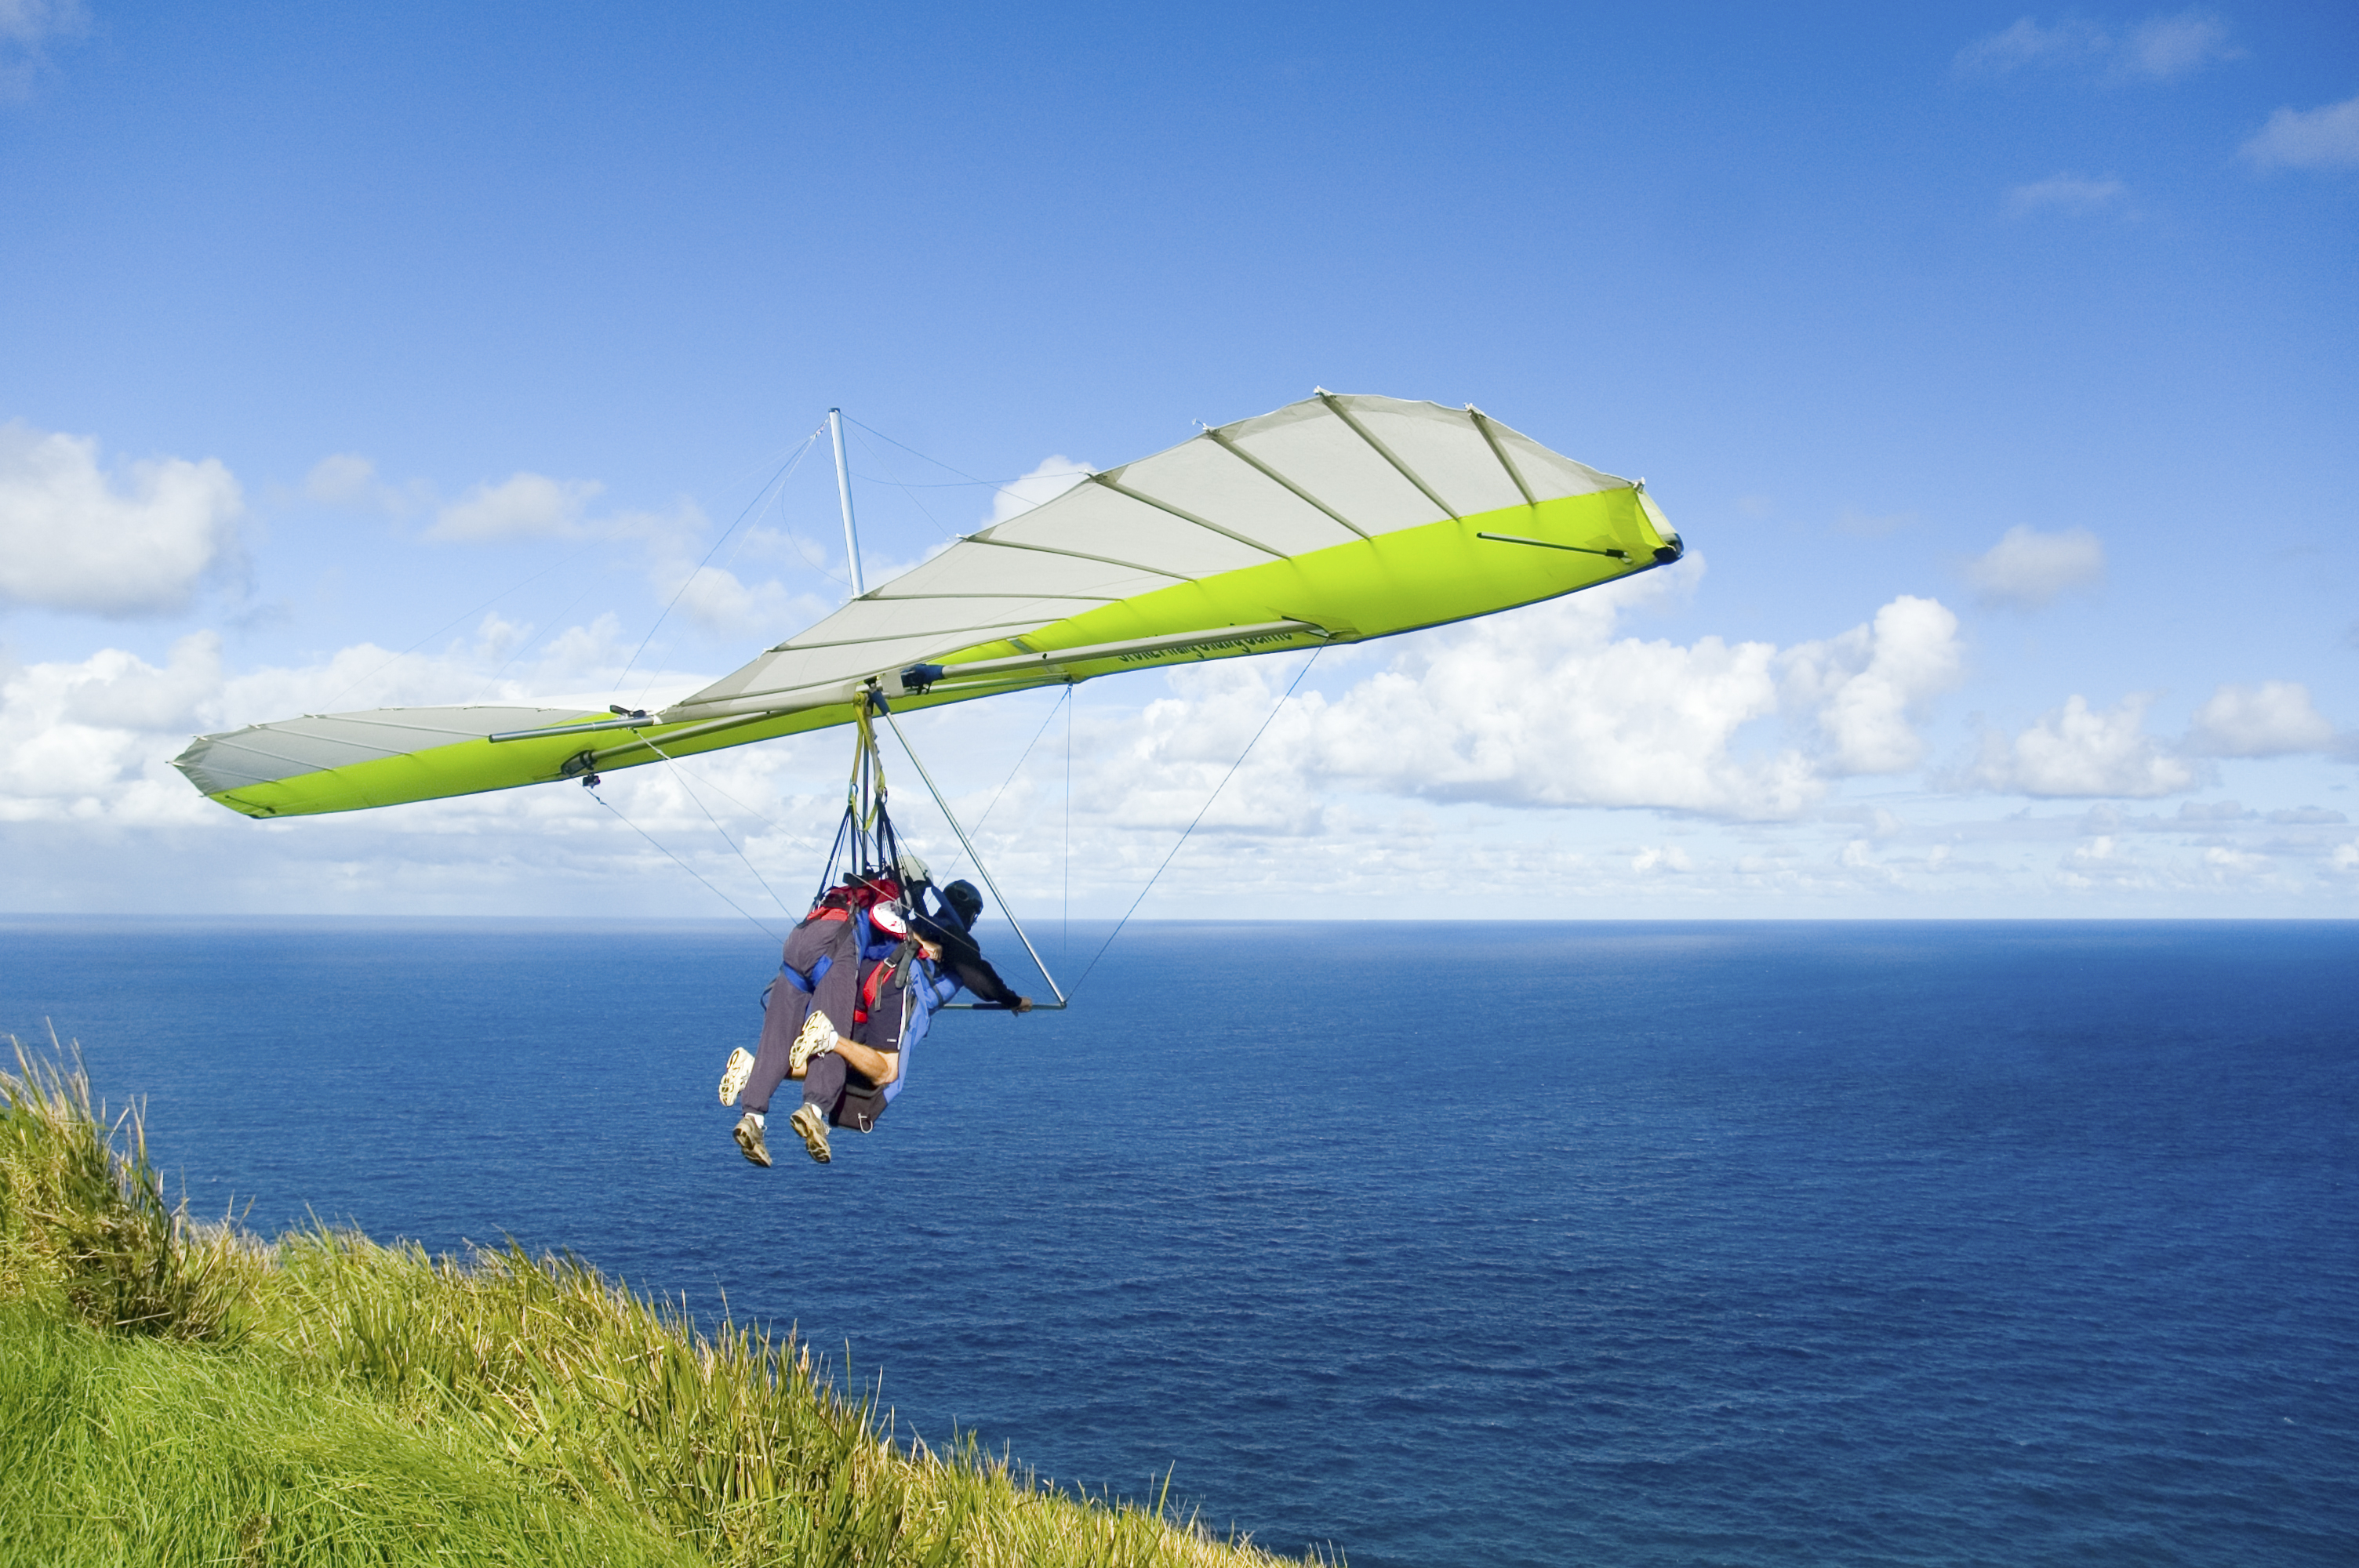 It was gut wrenching to read about Lenami Godinez' first and last hang gliding experience, which had been an anniversary gift from her boyfriend.